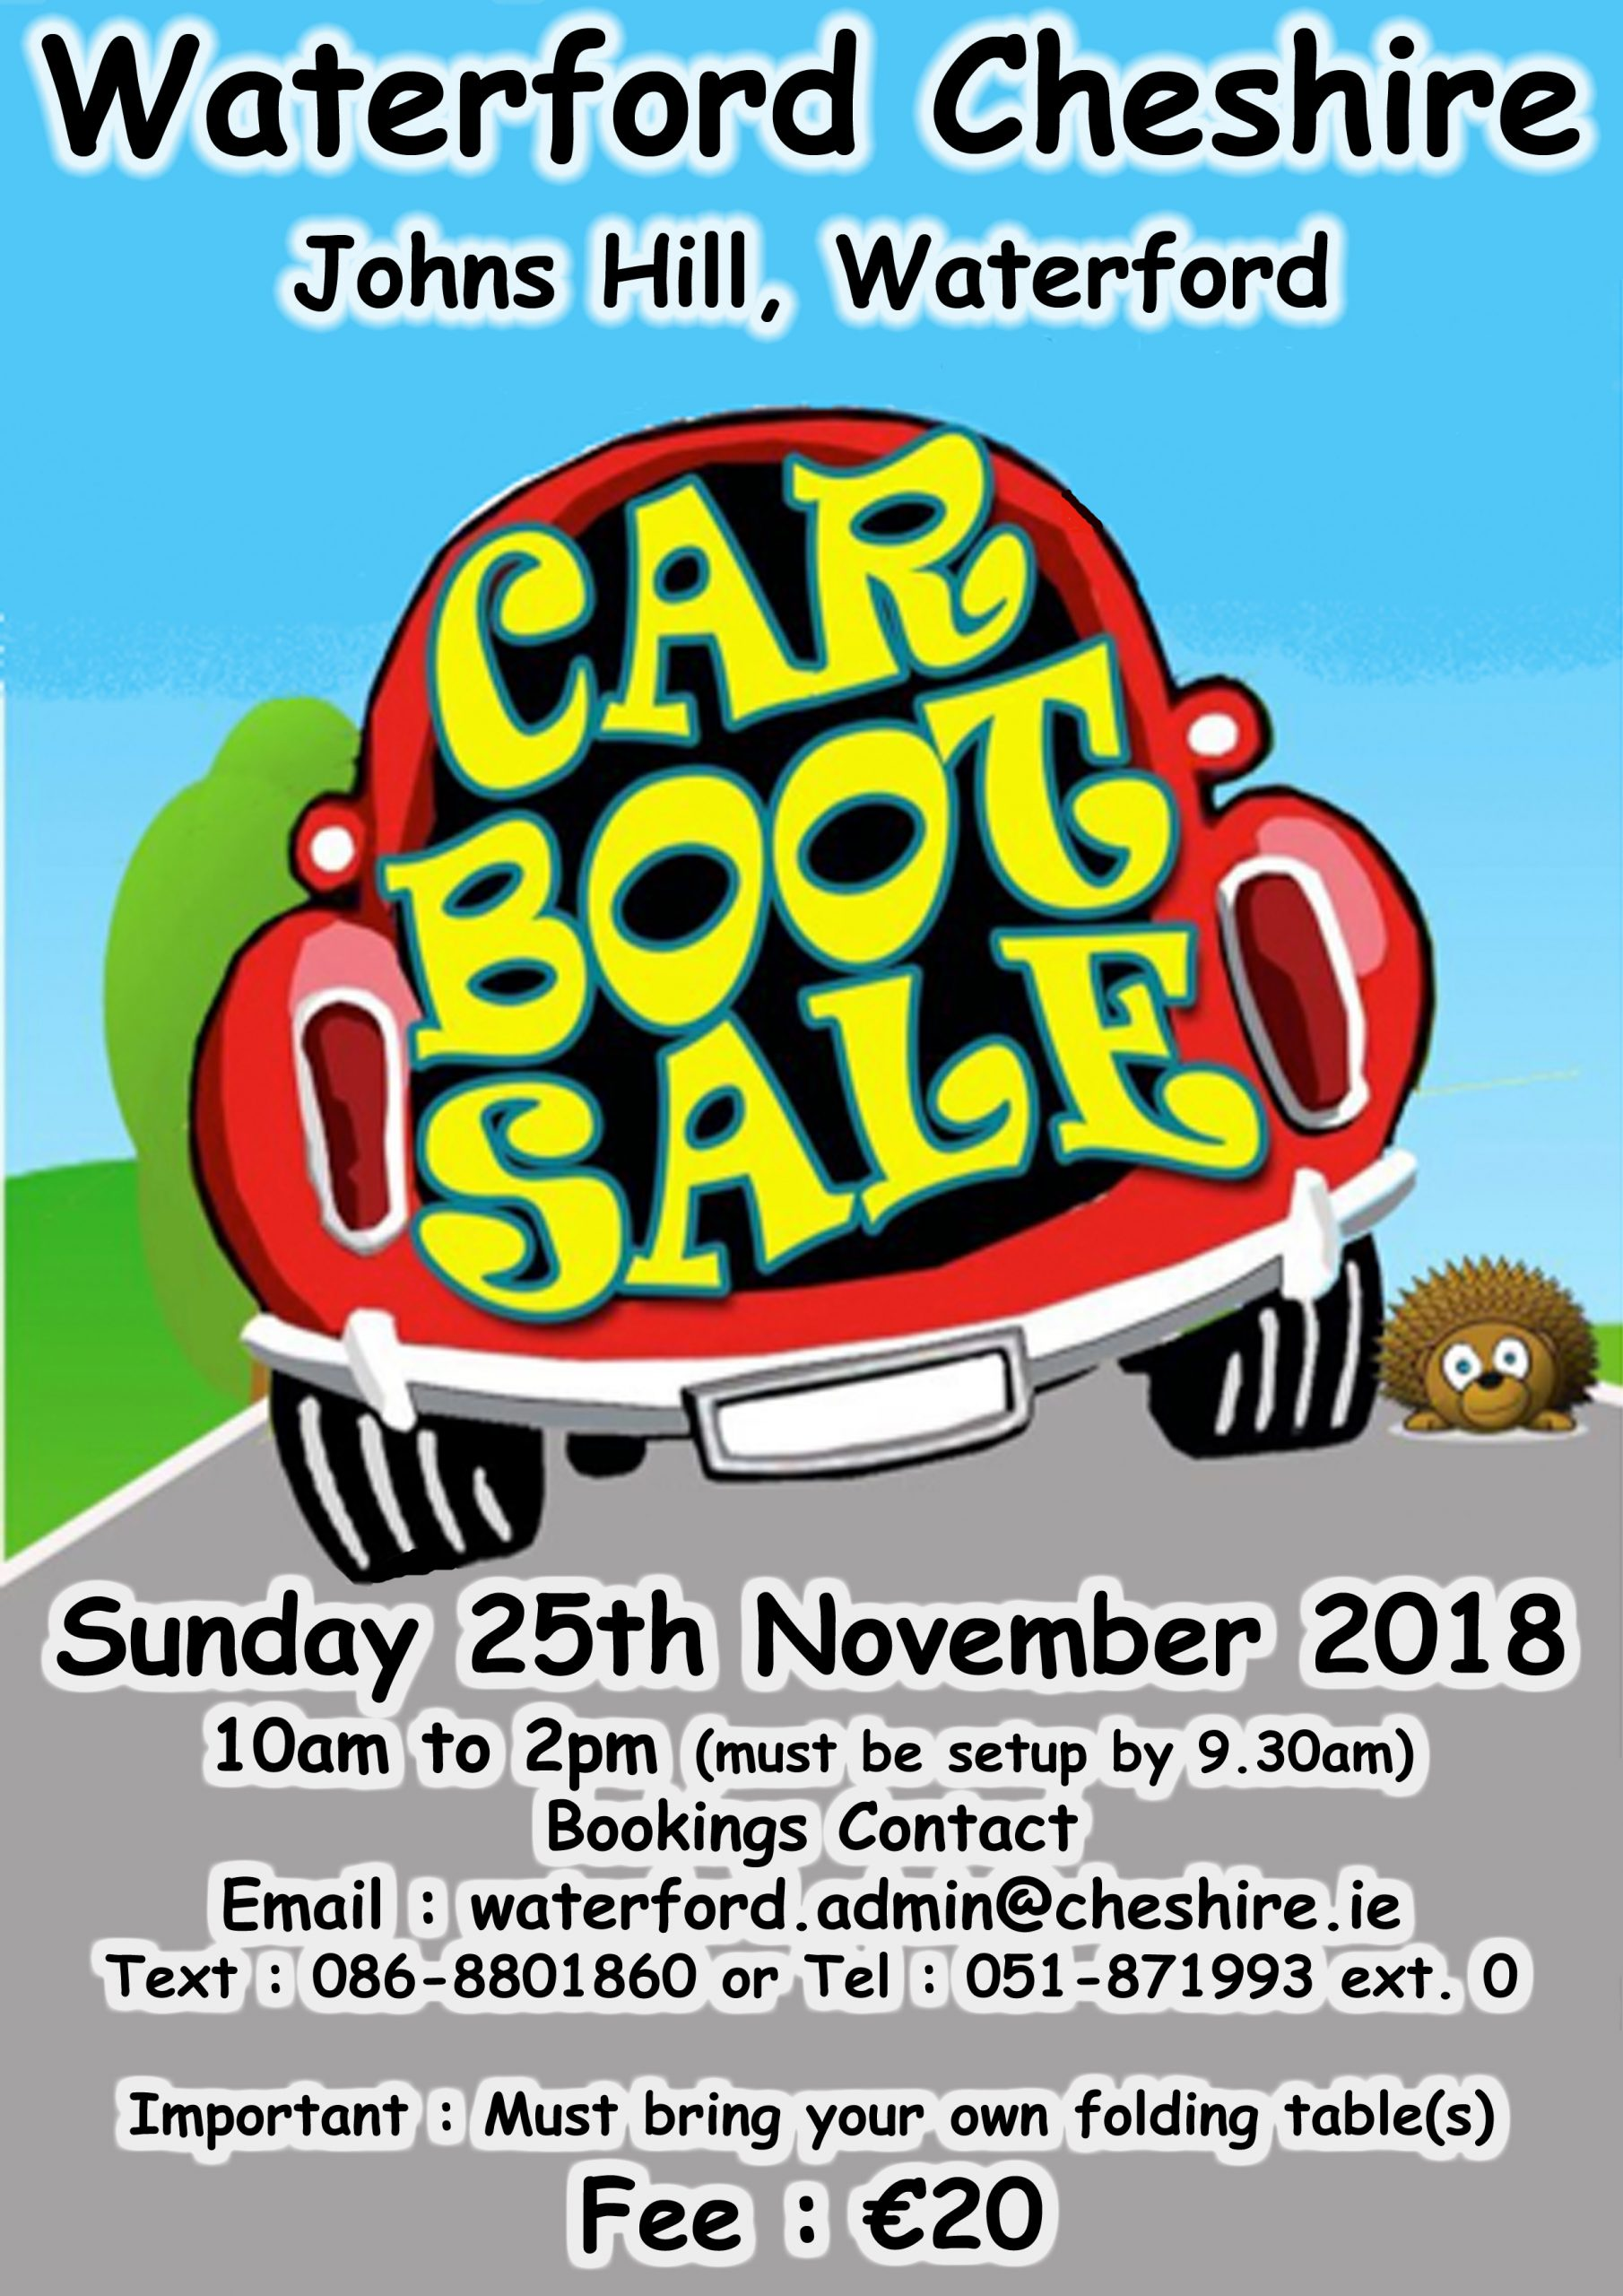 Waterford Cheshire's Car Boot Sale - Sunday November 25th